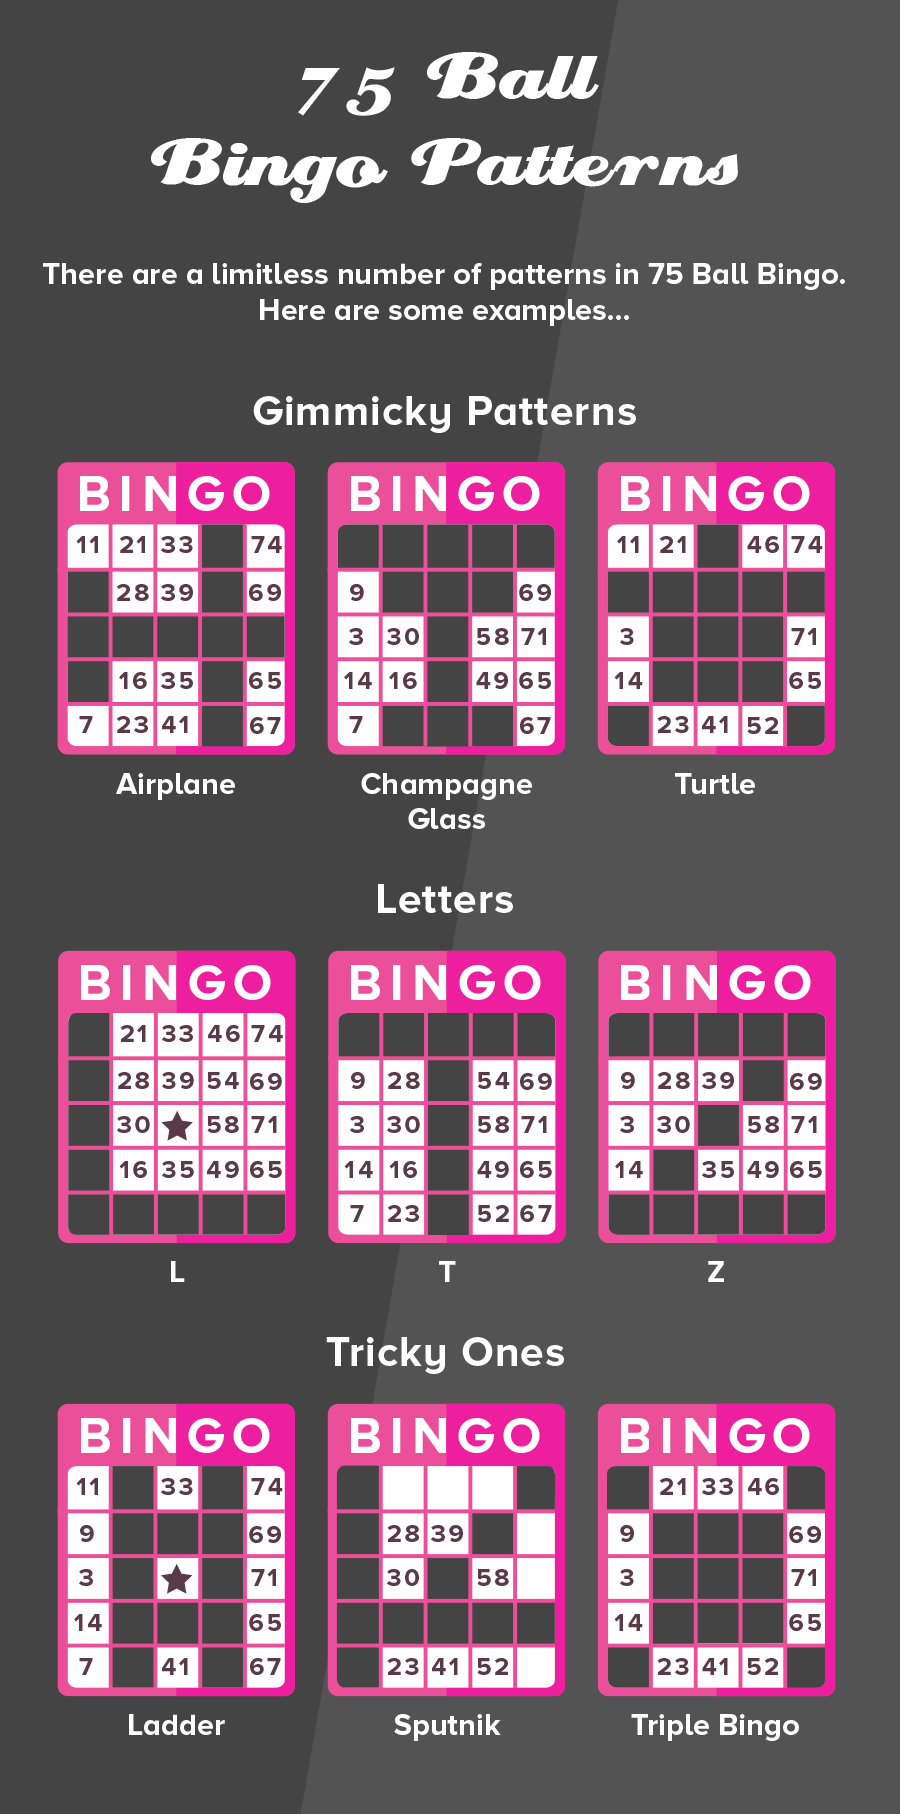 75-Ball Bingo Patterns